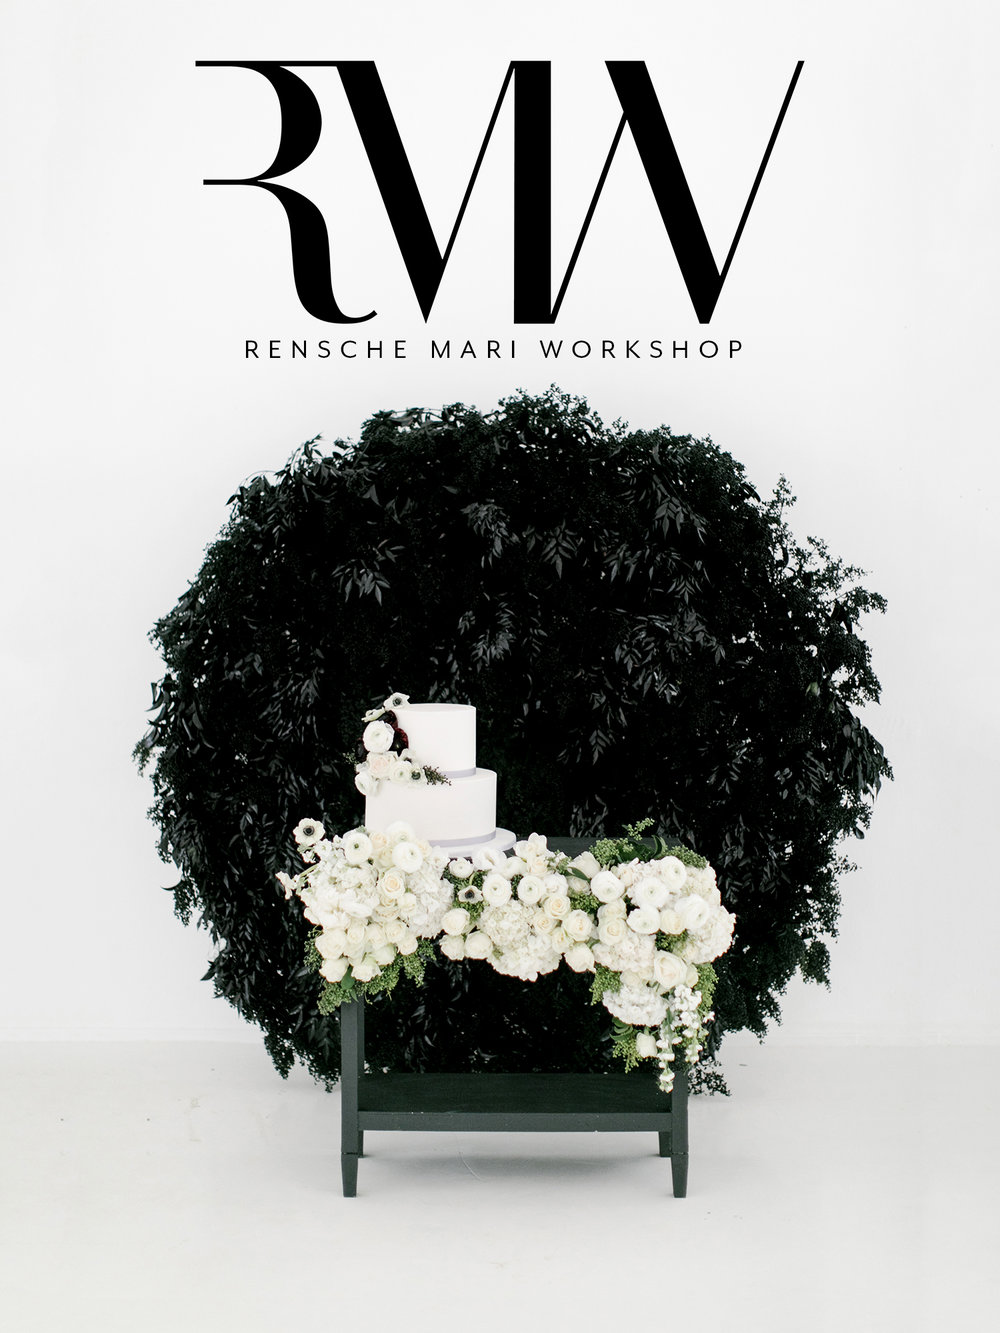 Wedding Photography Workshop South Africa | Rensche Mari